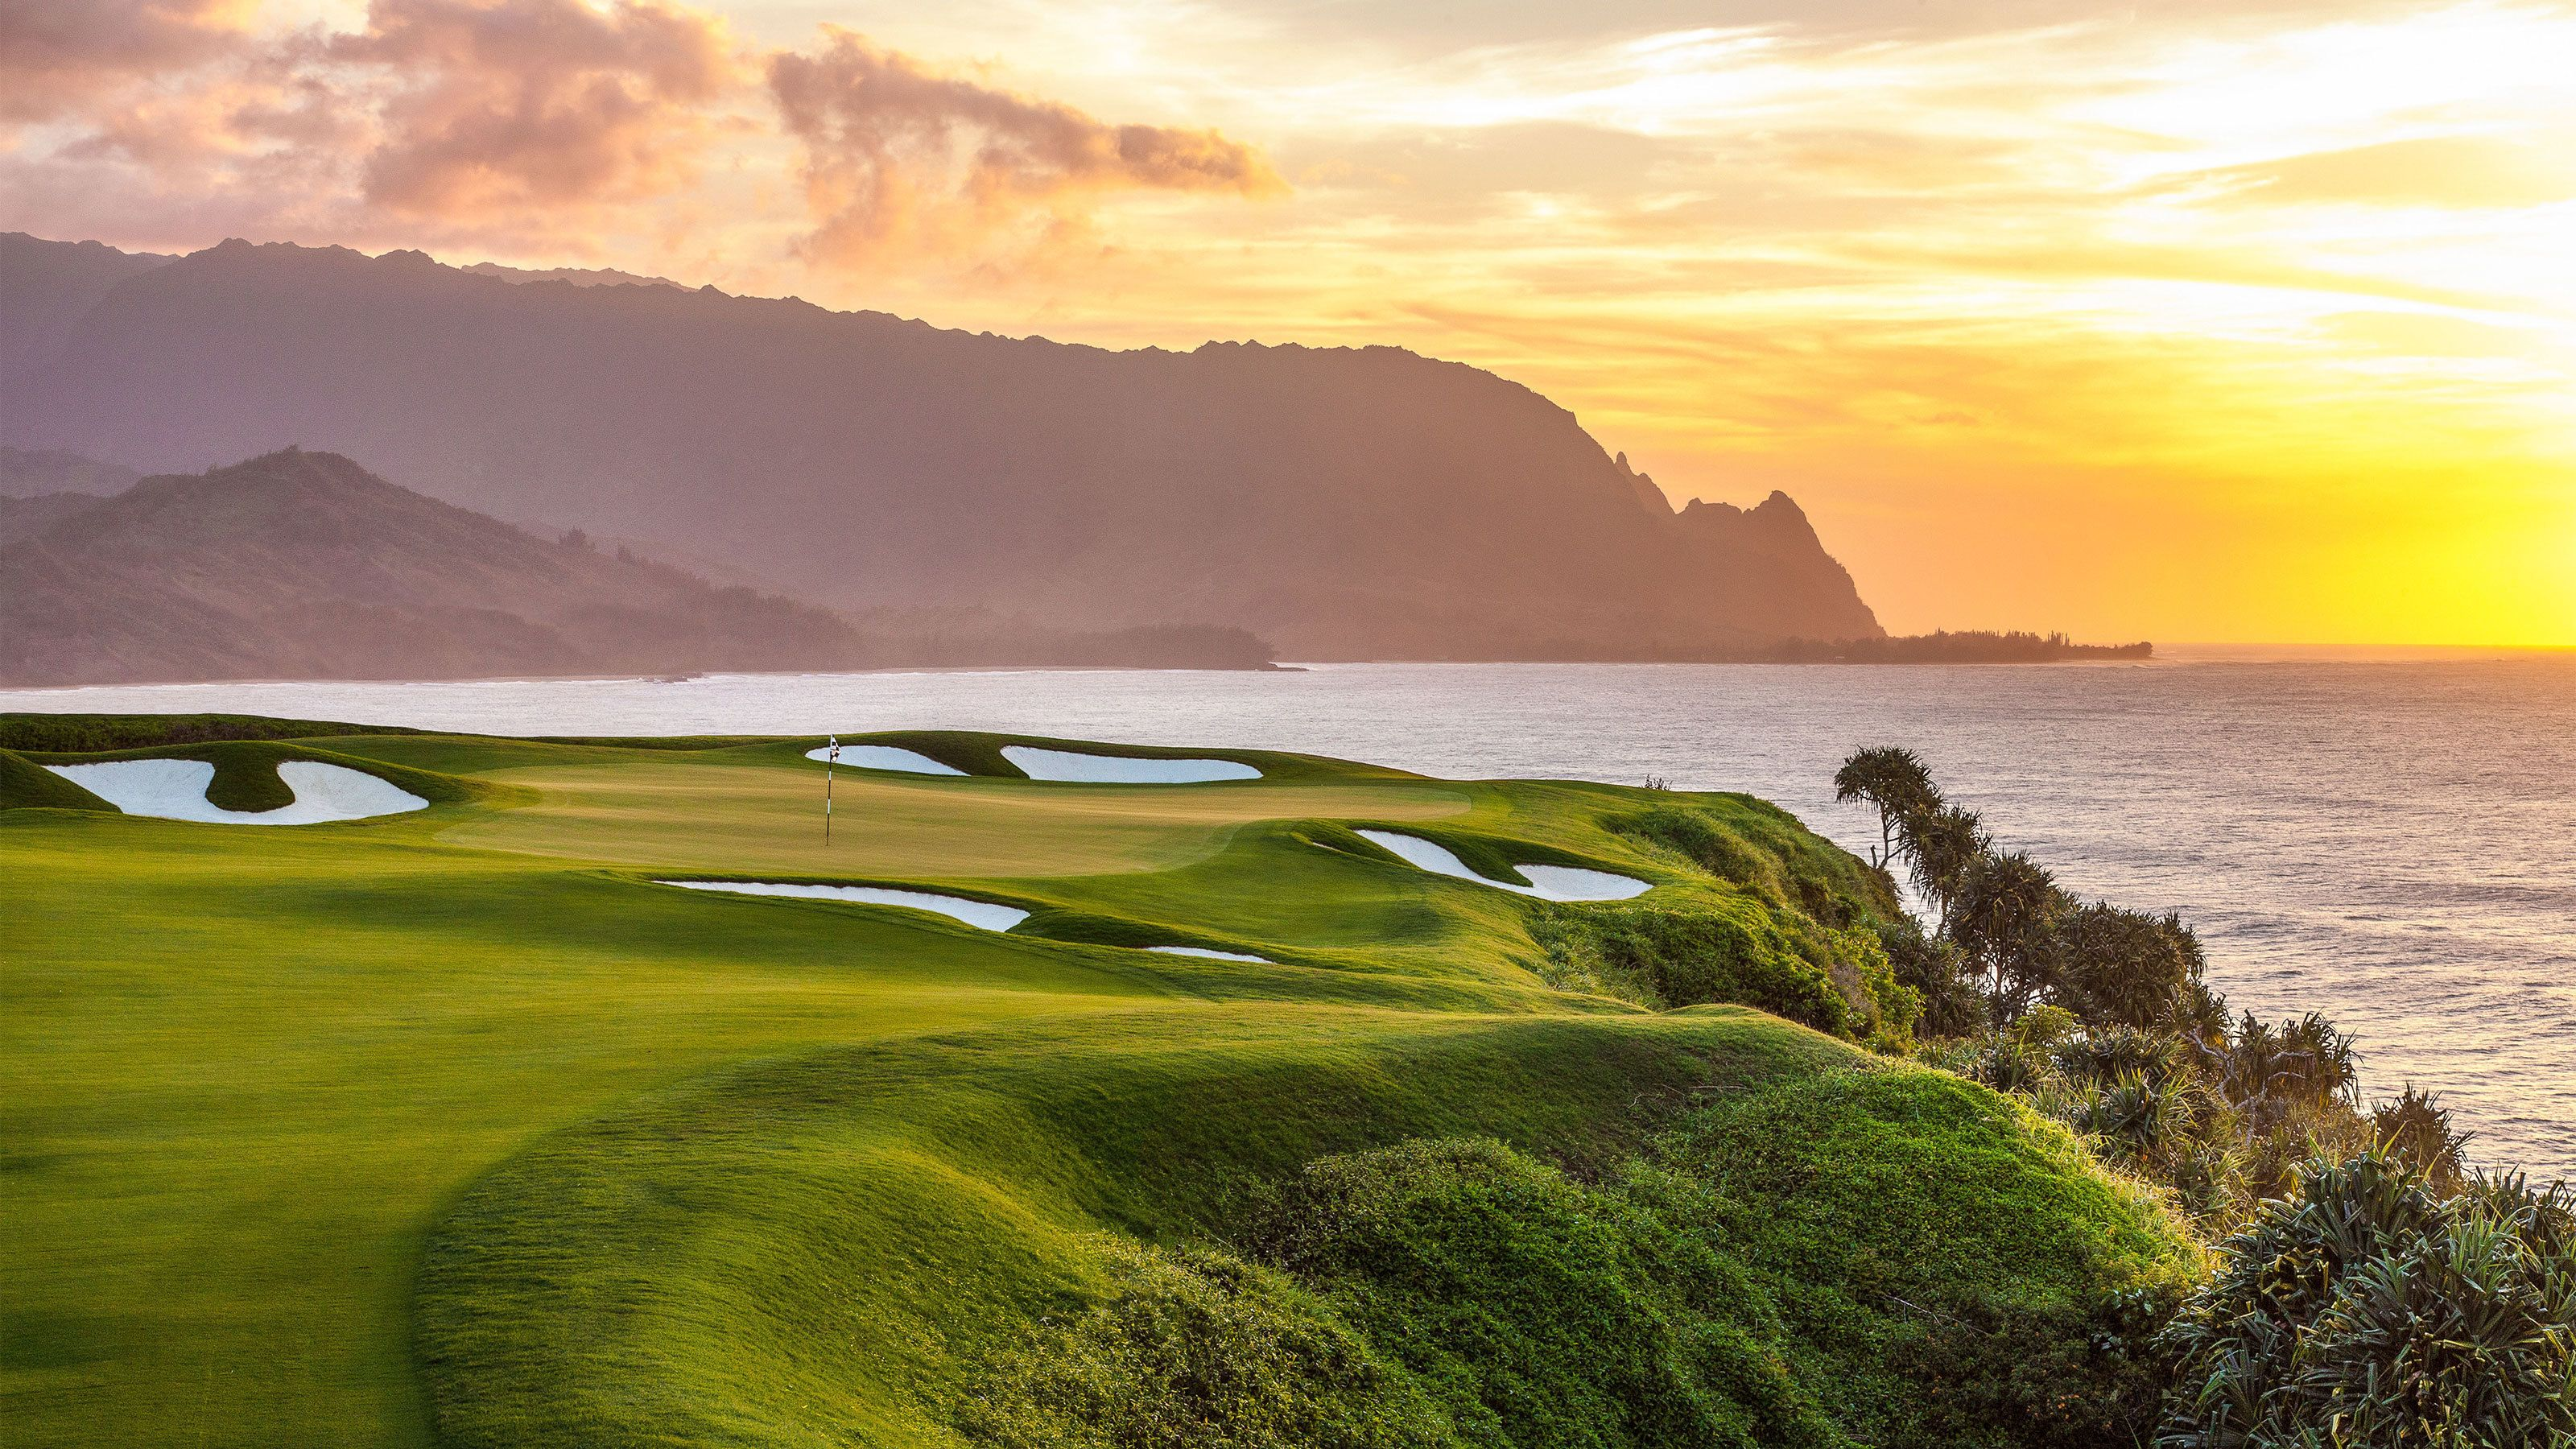 manicured lawns and sand traps at Makai Golf course in Kauai